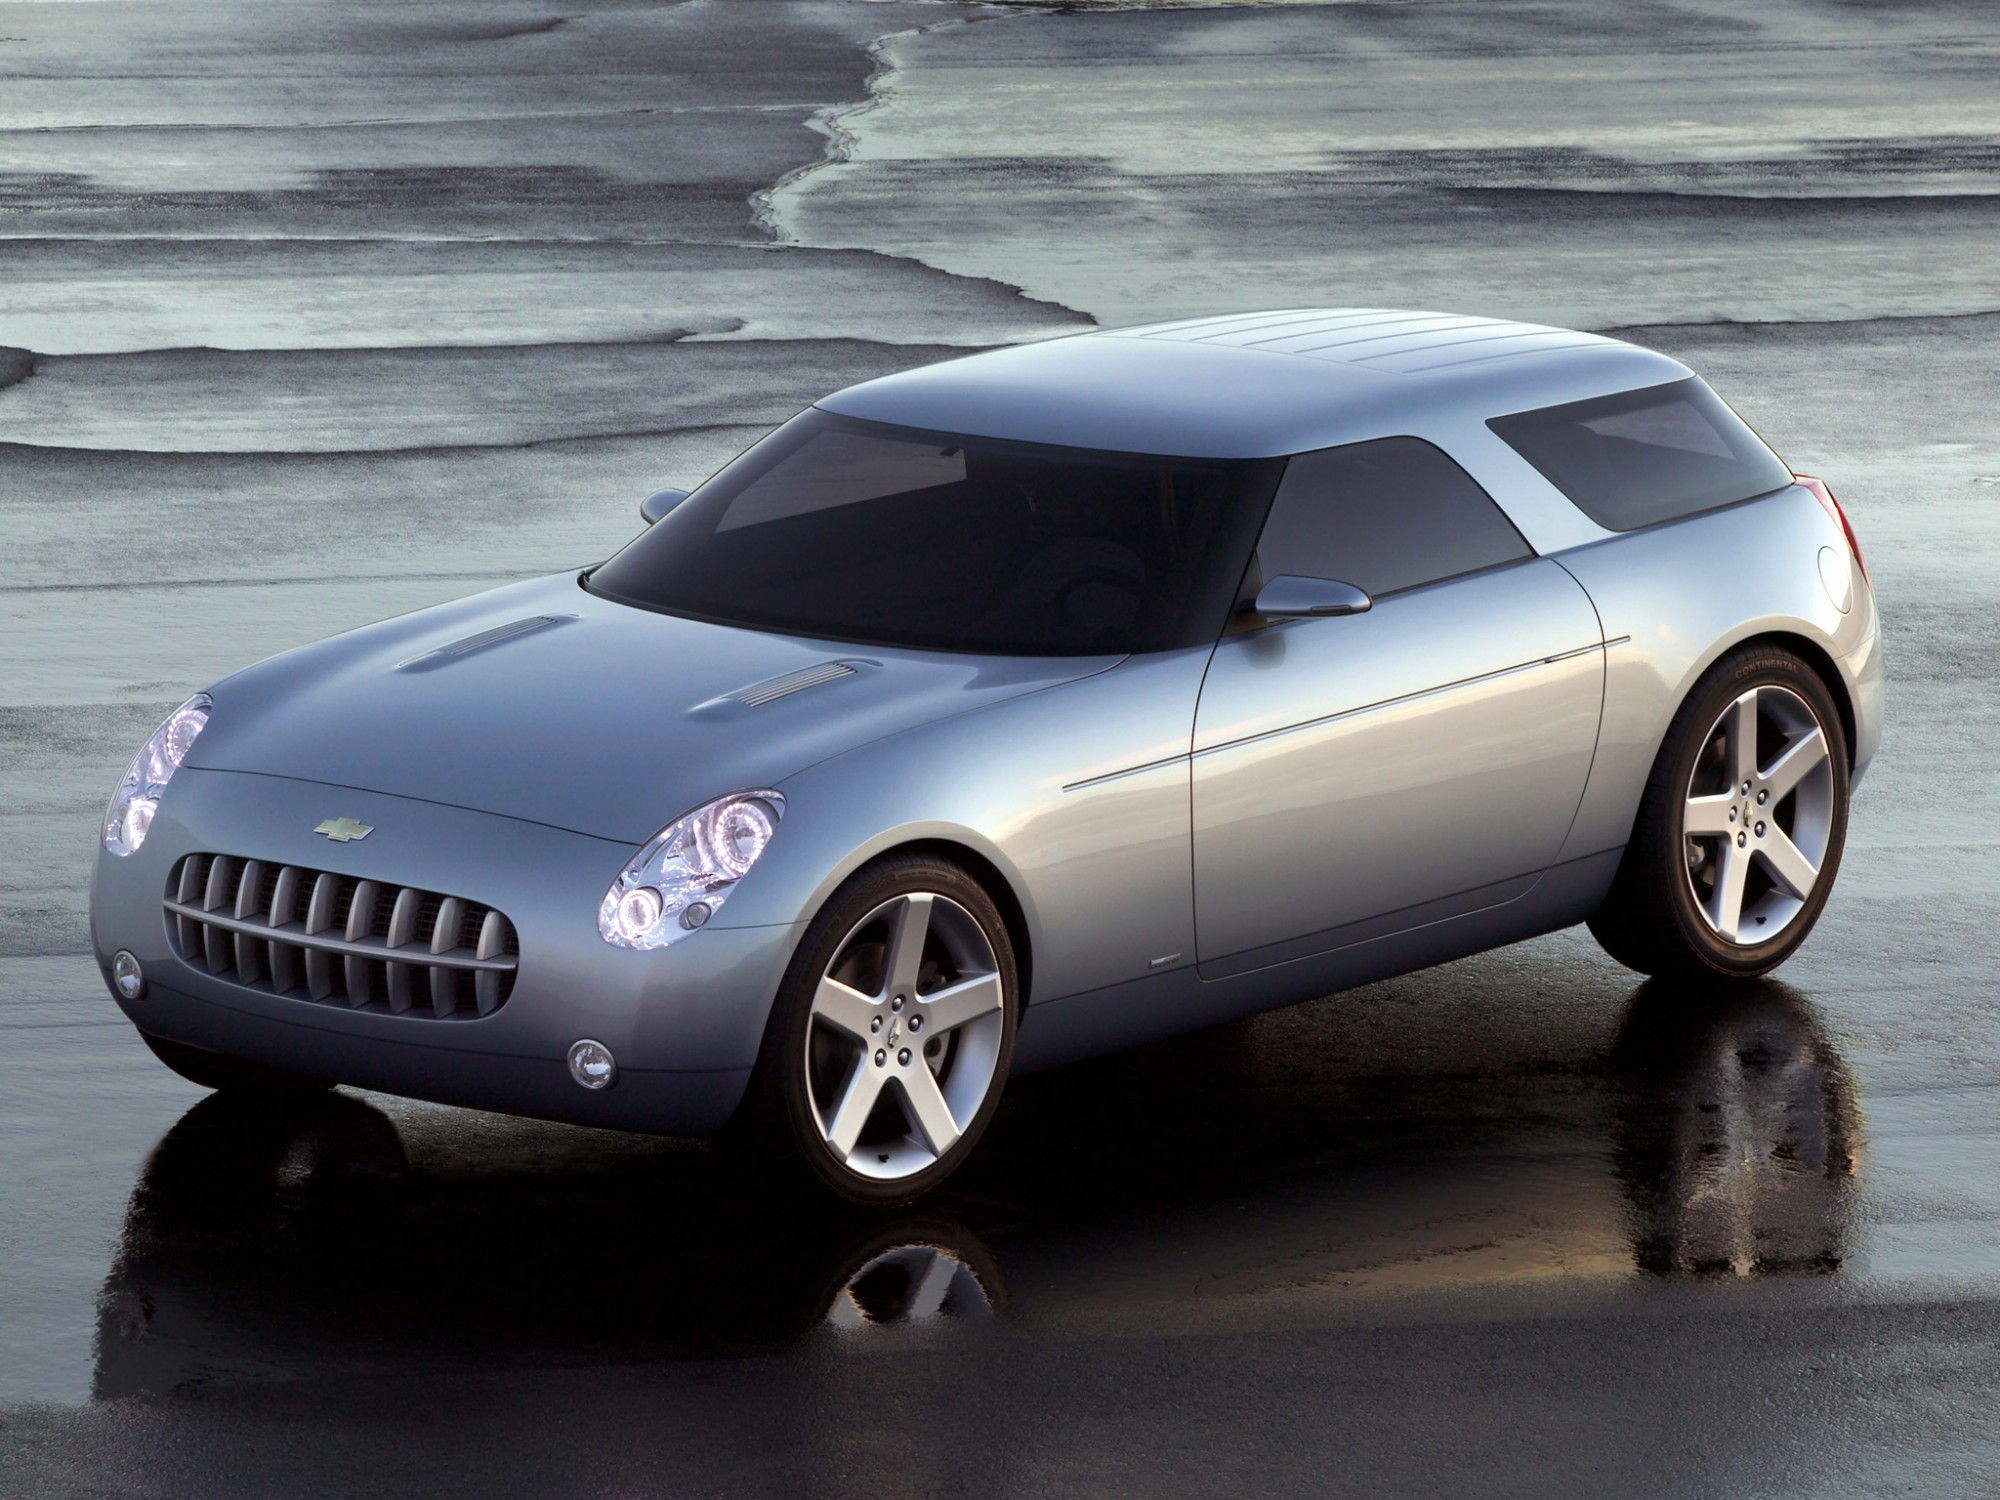 chevrolet_nomad_concept_20